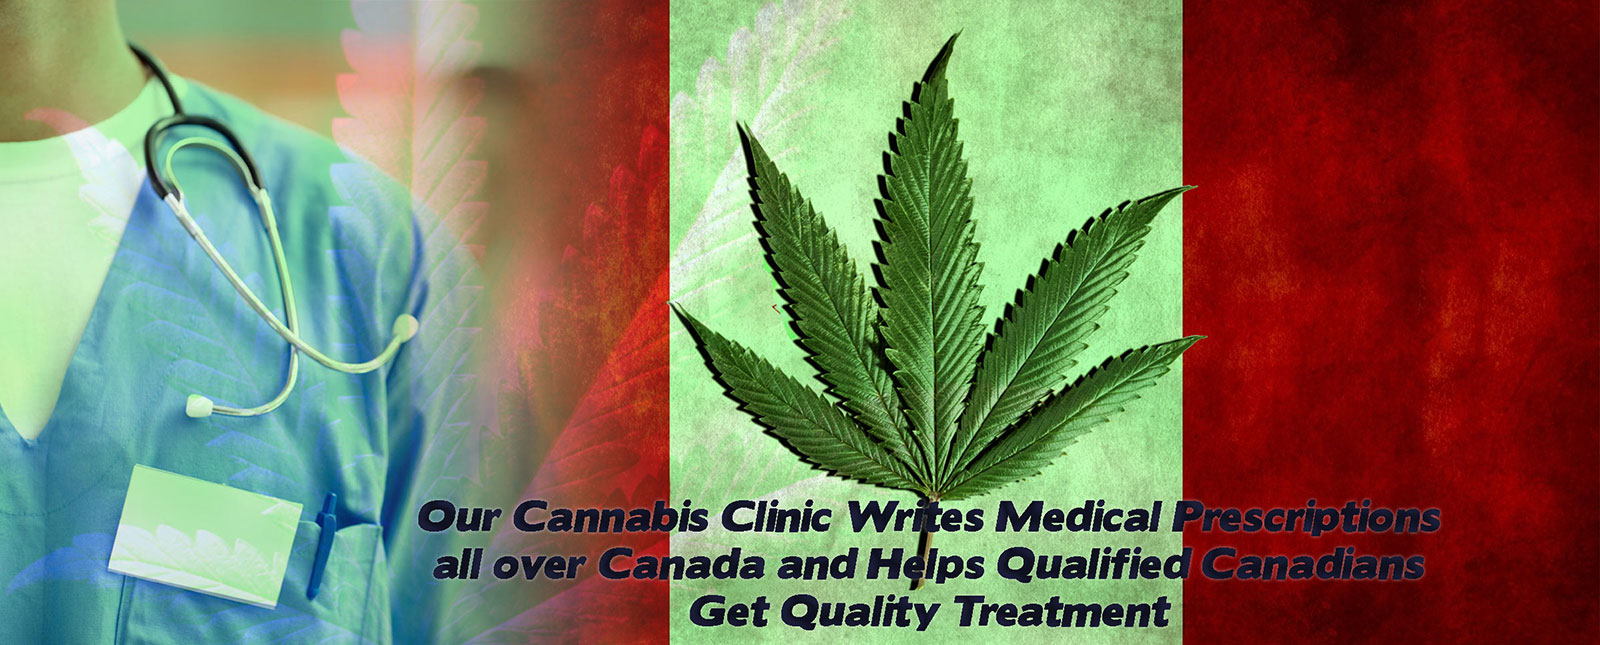 medical marijuana doctor Medical pot Cannabis Montreal medical marijuana doctors near me